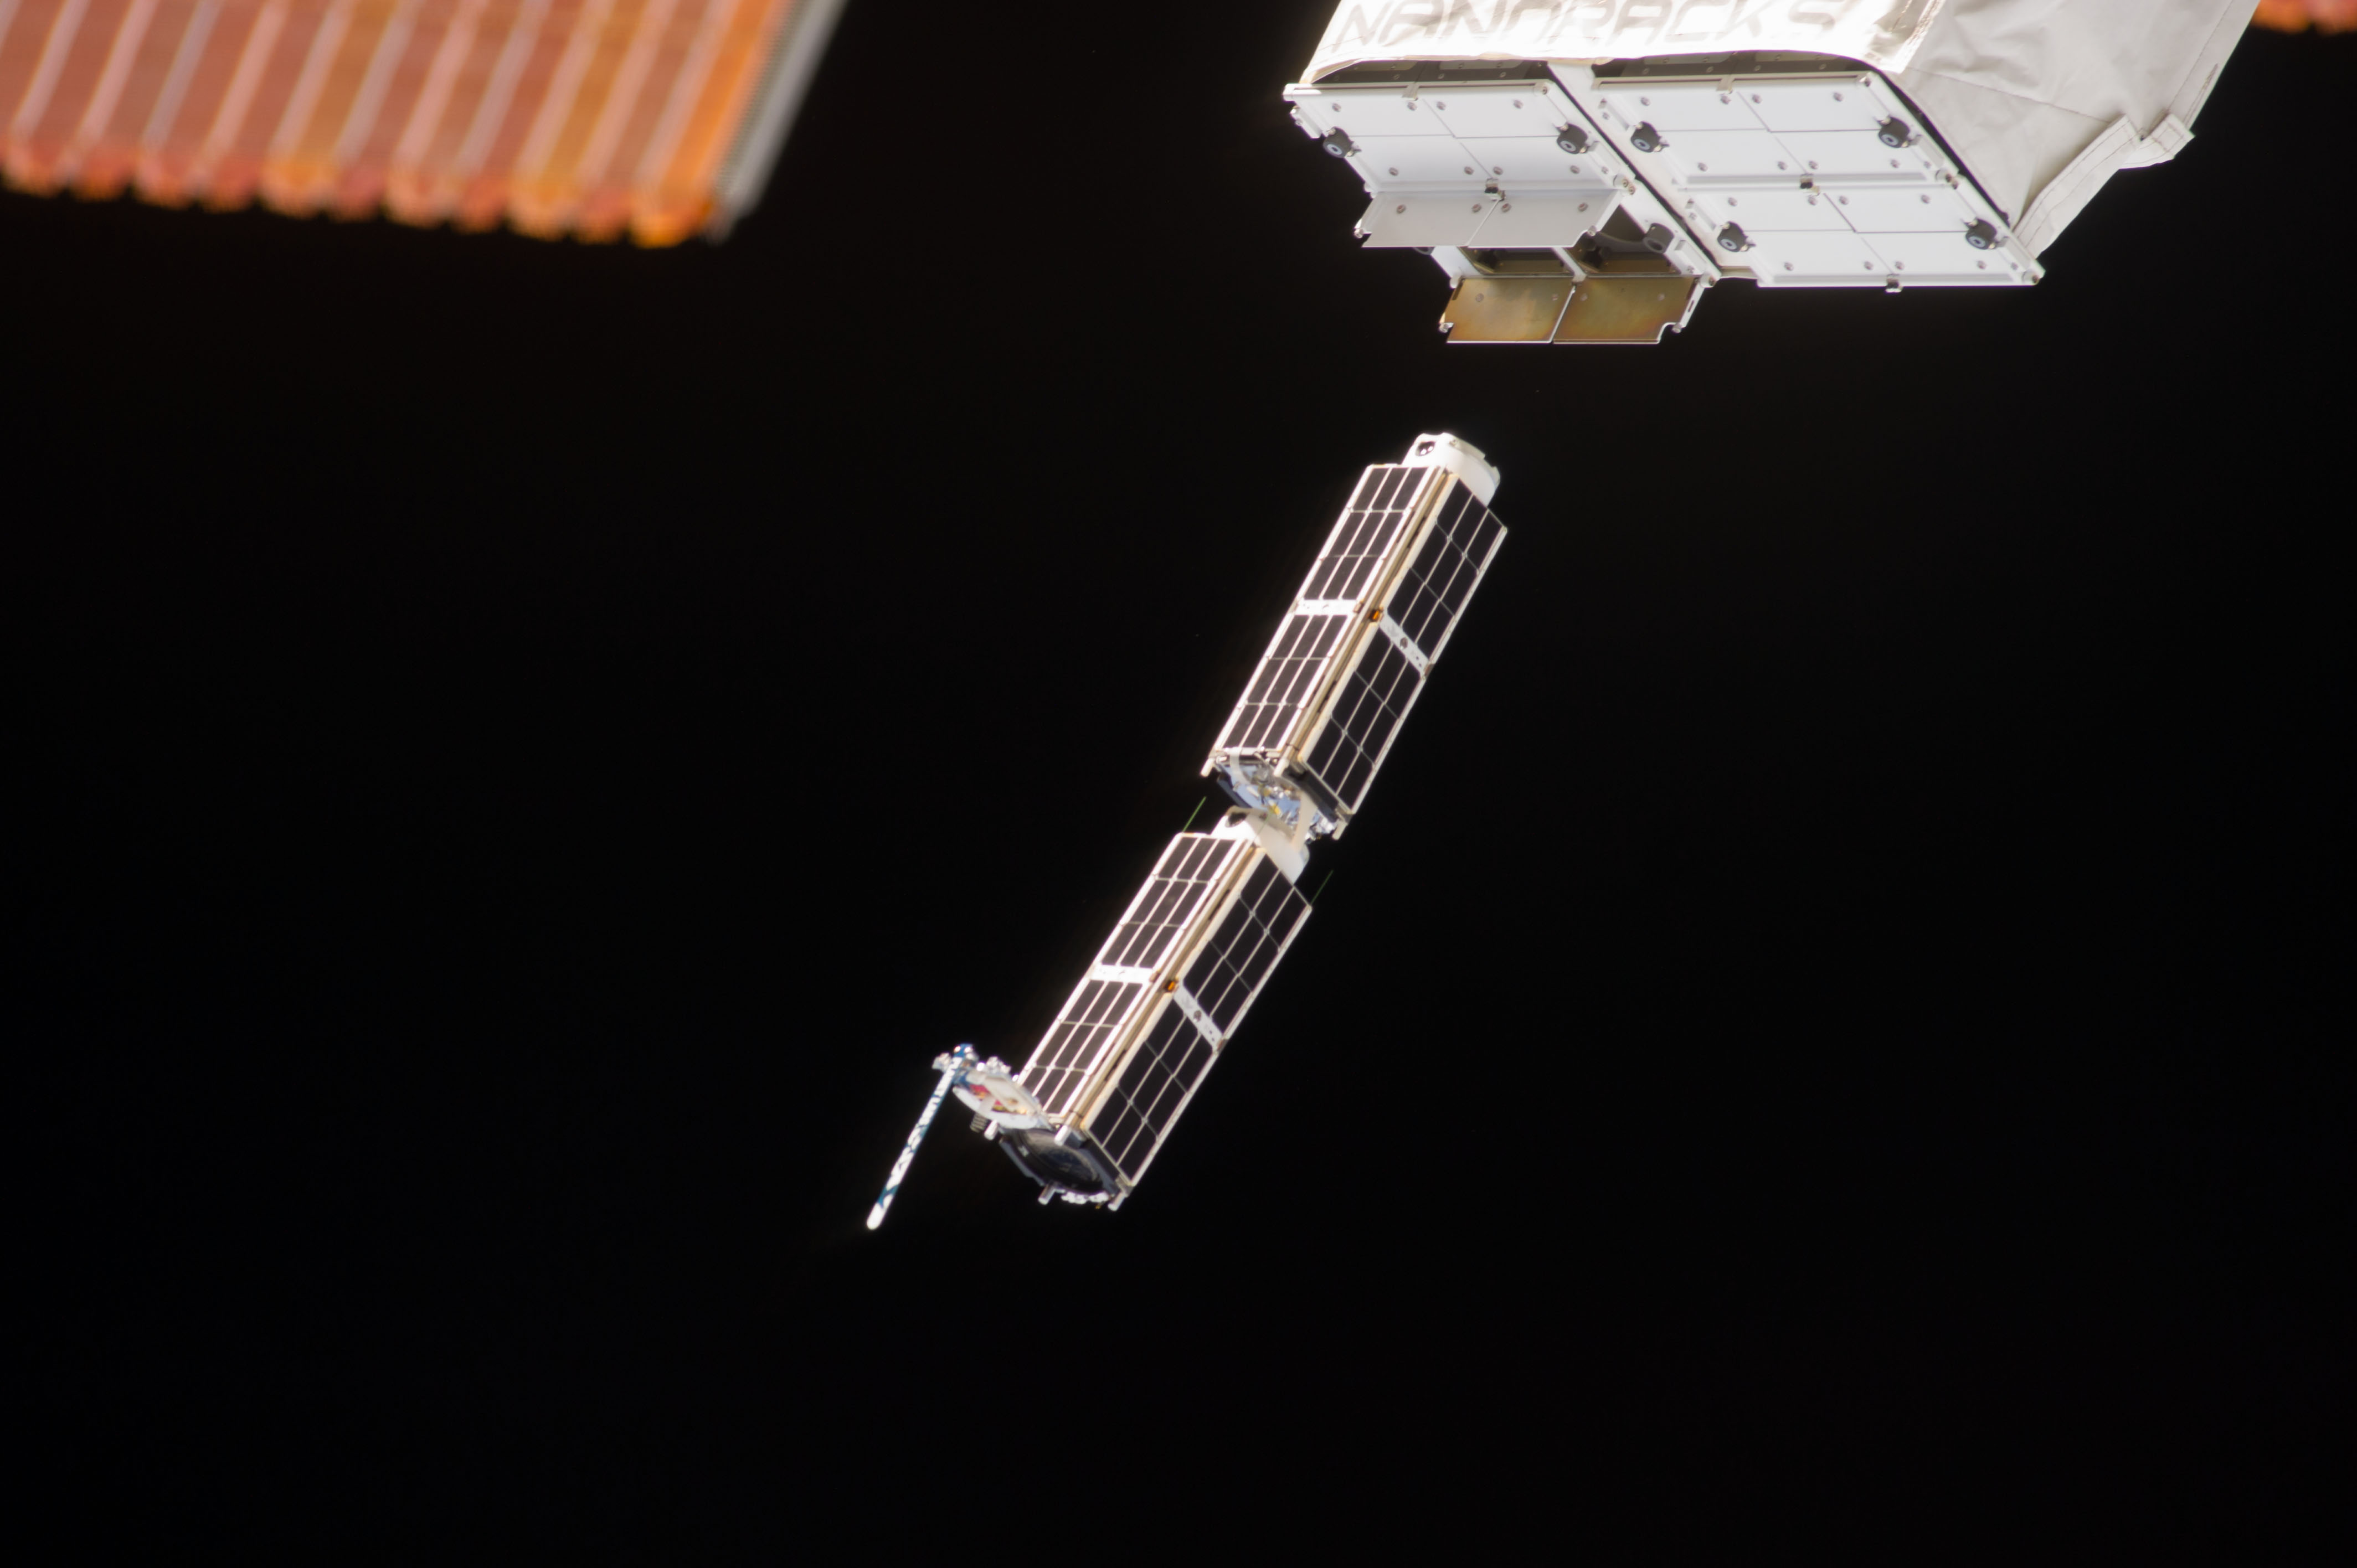 Doves close-up-of-cubesats-leaving-nanoracks-deployer-2014-02-11.jpg